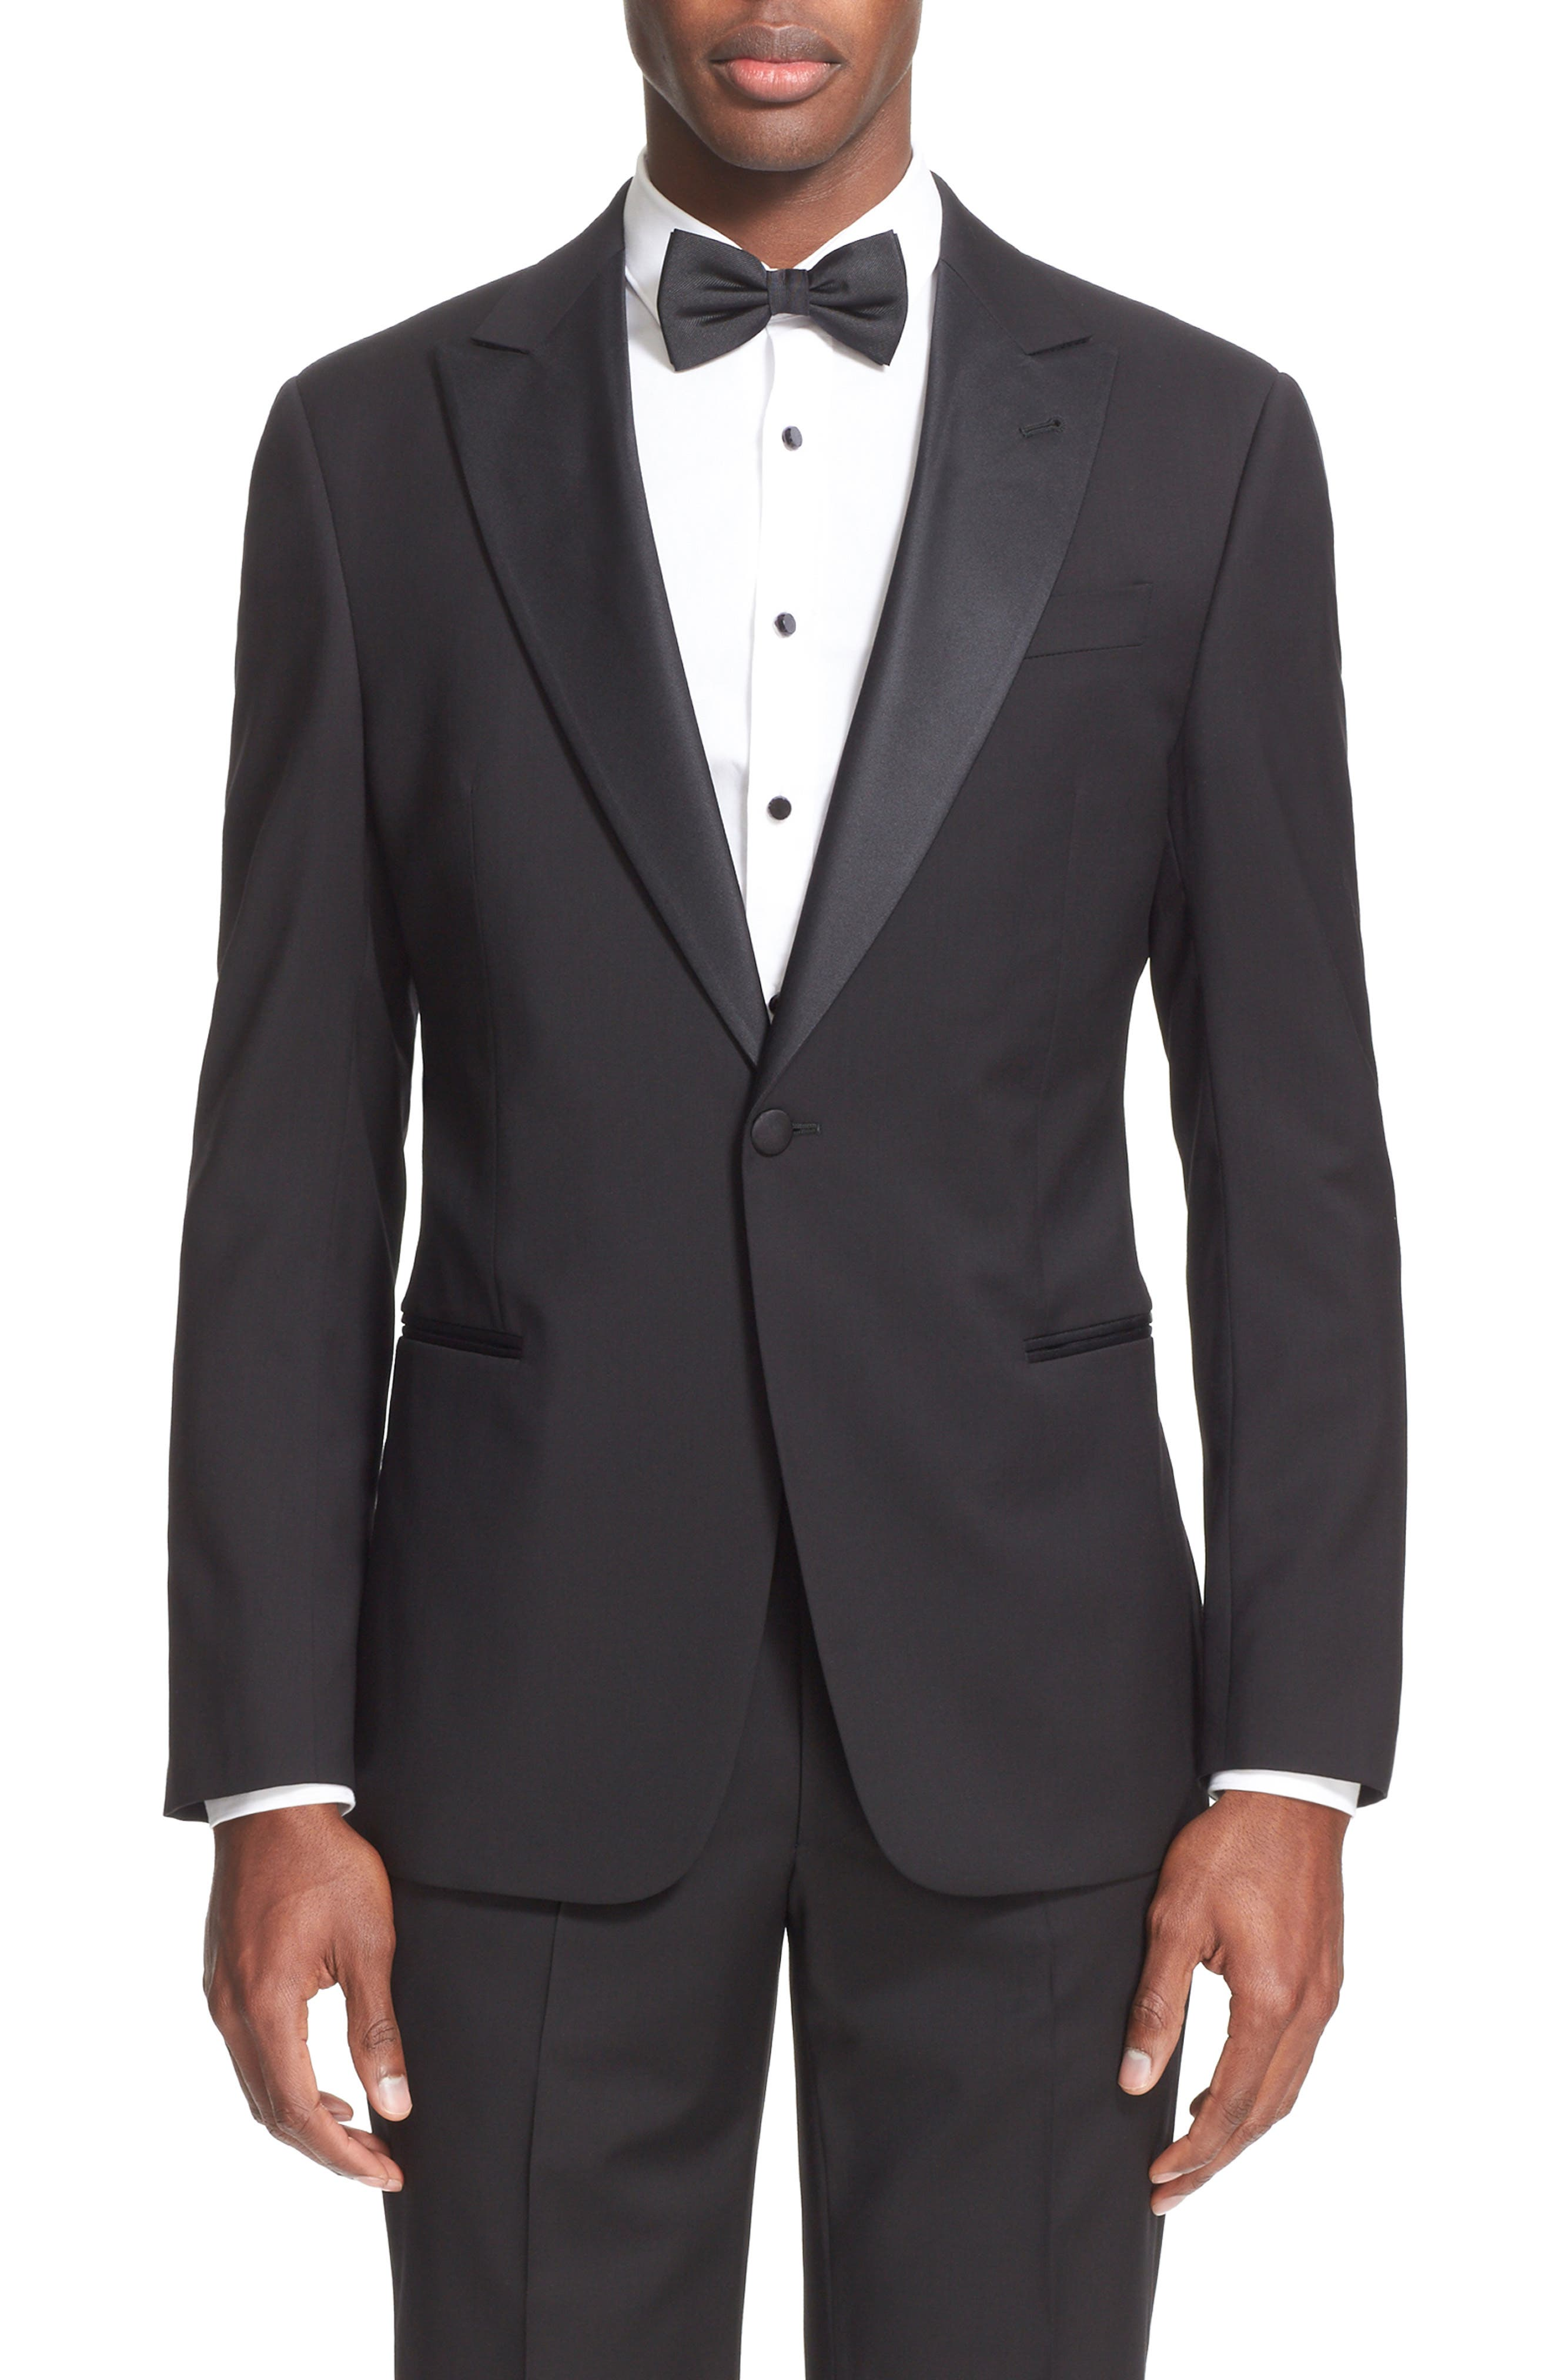 Trim Fit Wool Tuxedo,                             Alternate thumbnail 10, color,                             001